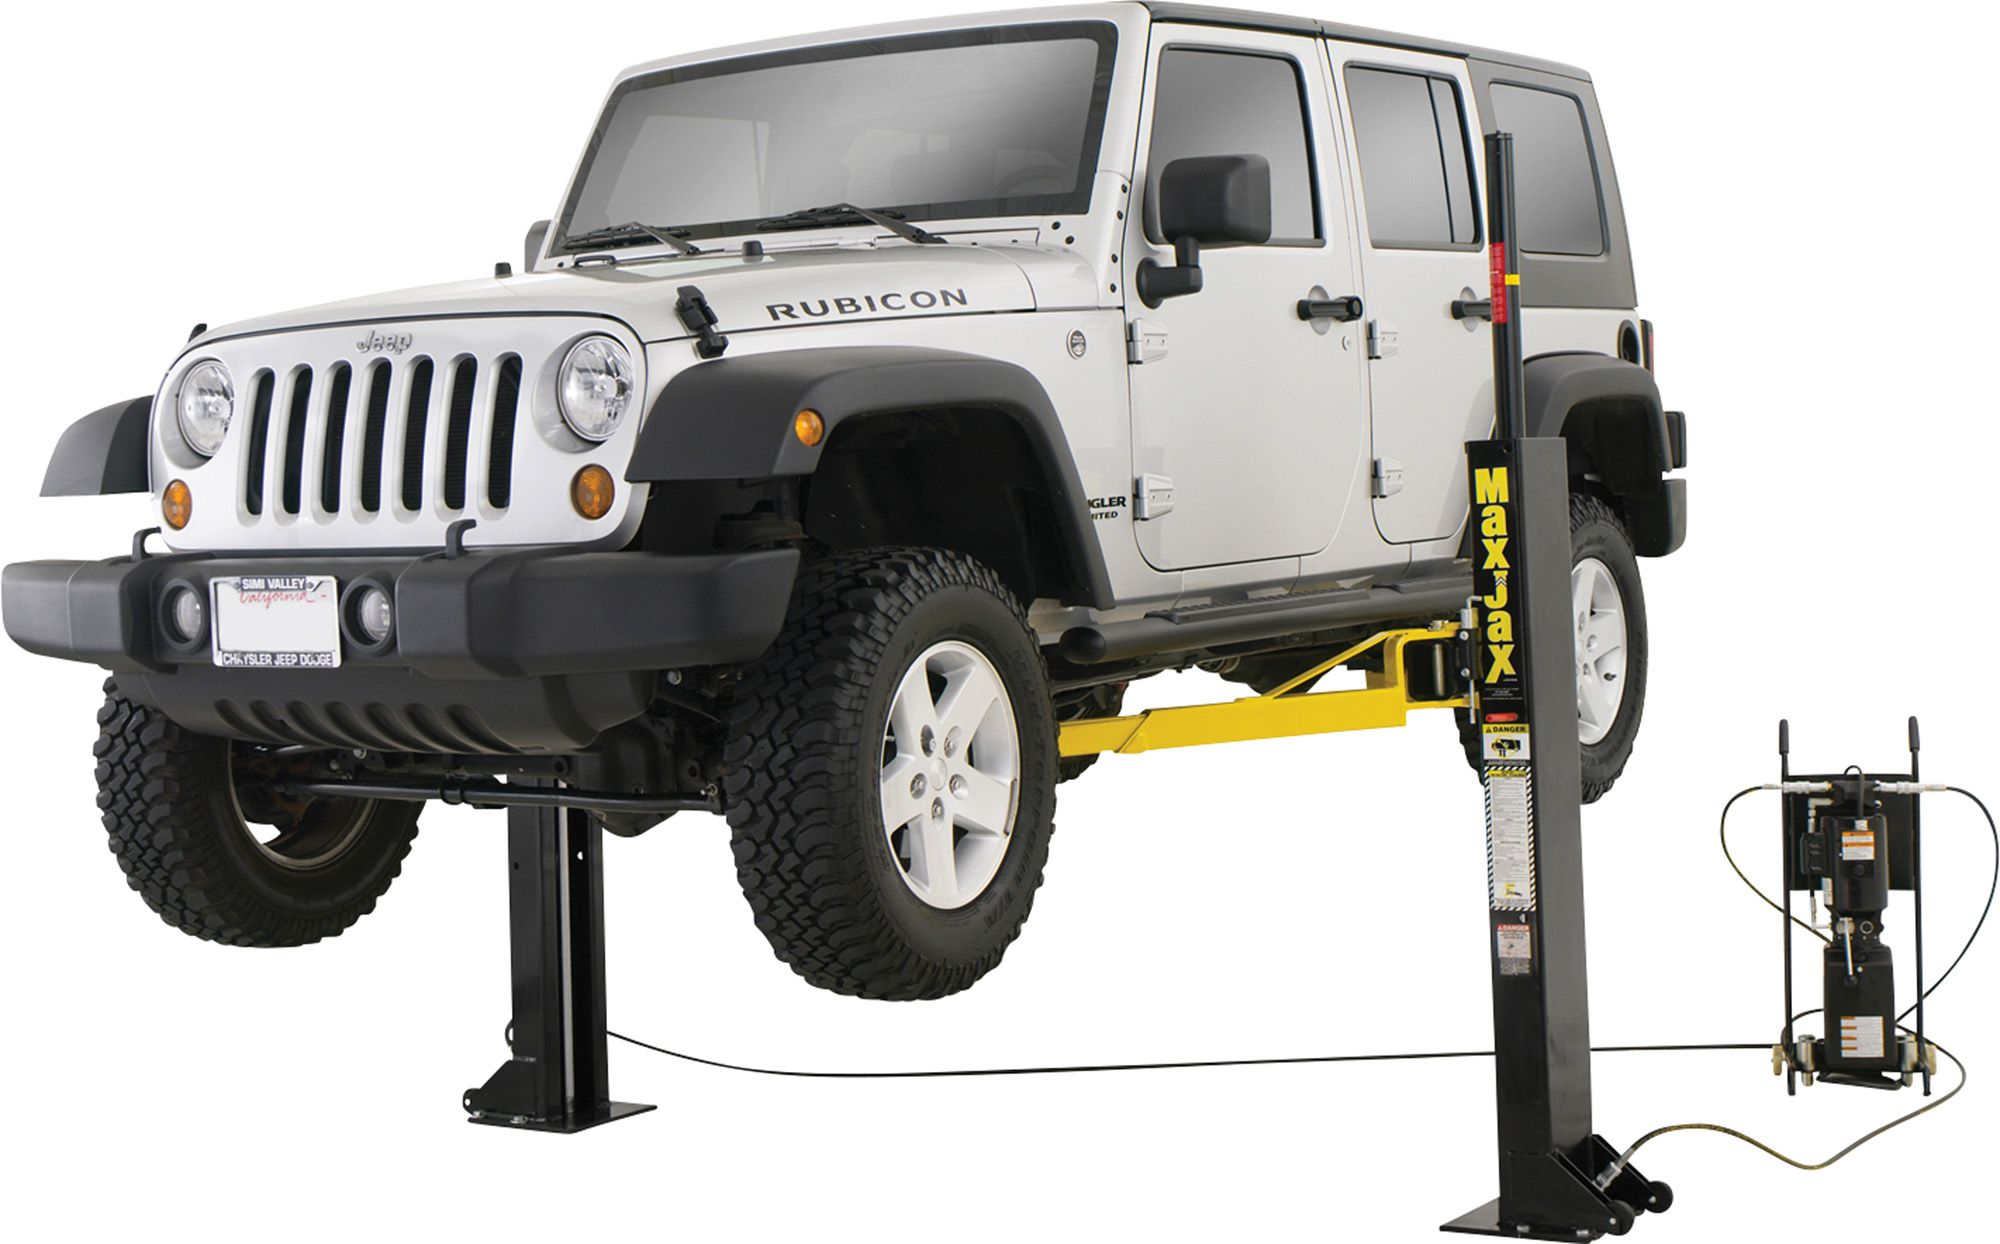 MaxJax 2-Post Vehicle Lift | Lifted cars, Automotive ...